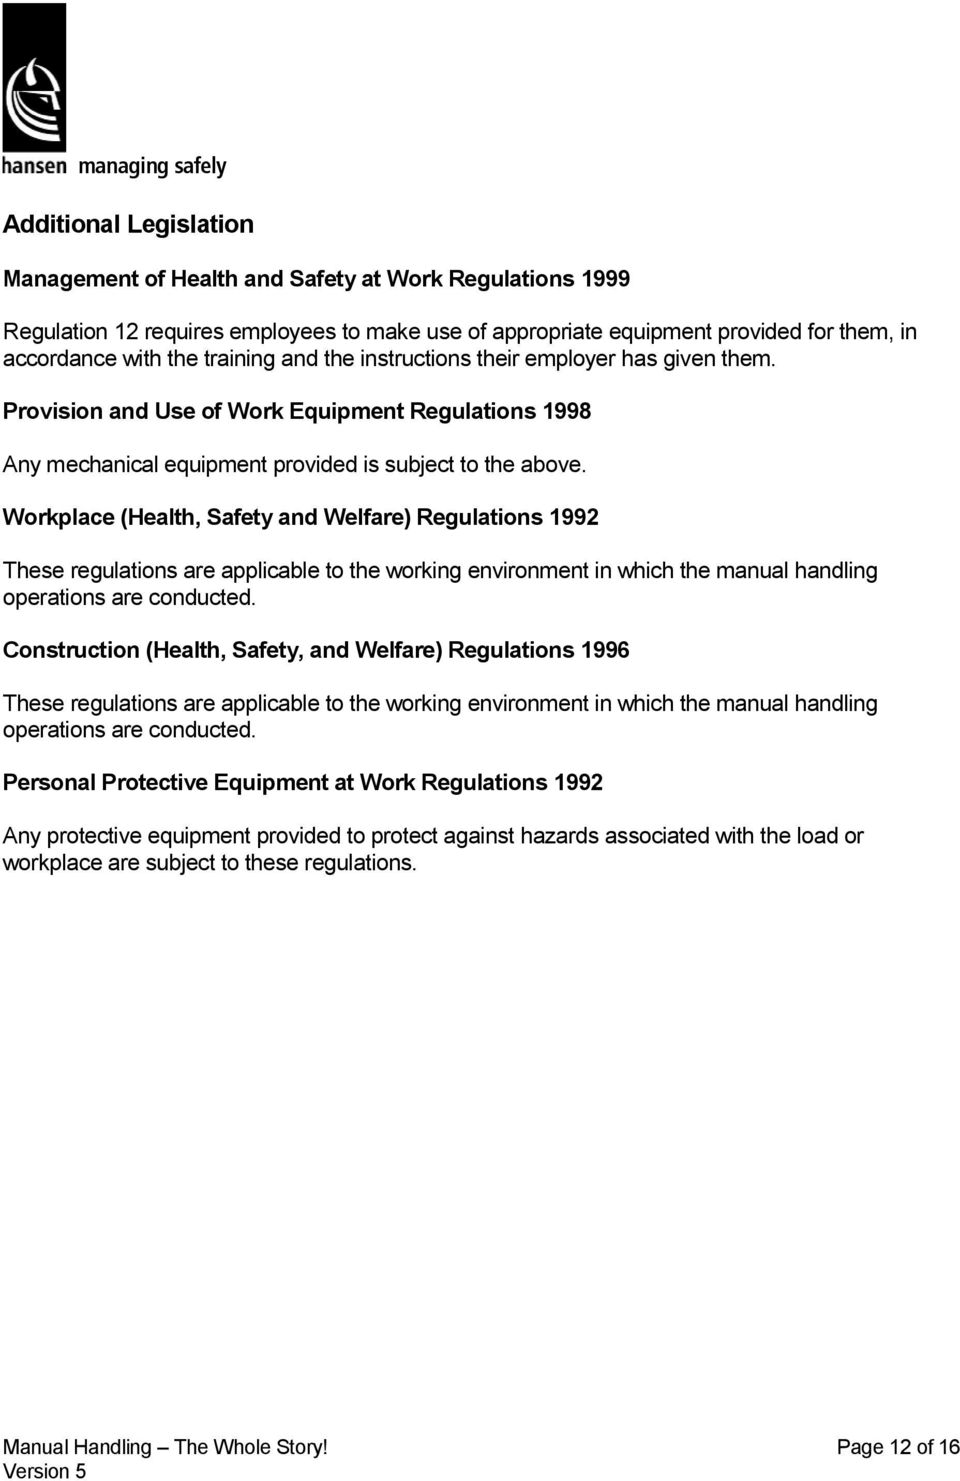 Workplace (Health, Safety and Welfare) Regulations 1992 These regulations are applicable to the working environment in which the manual handling operations are conducted.